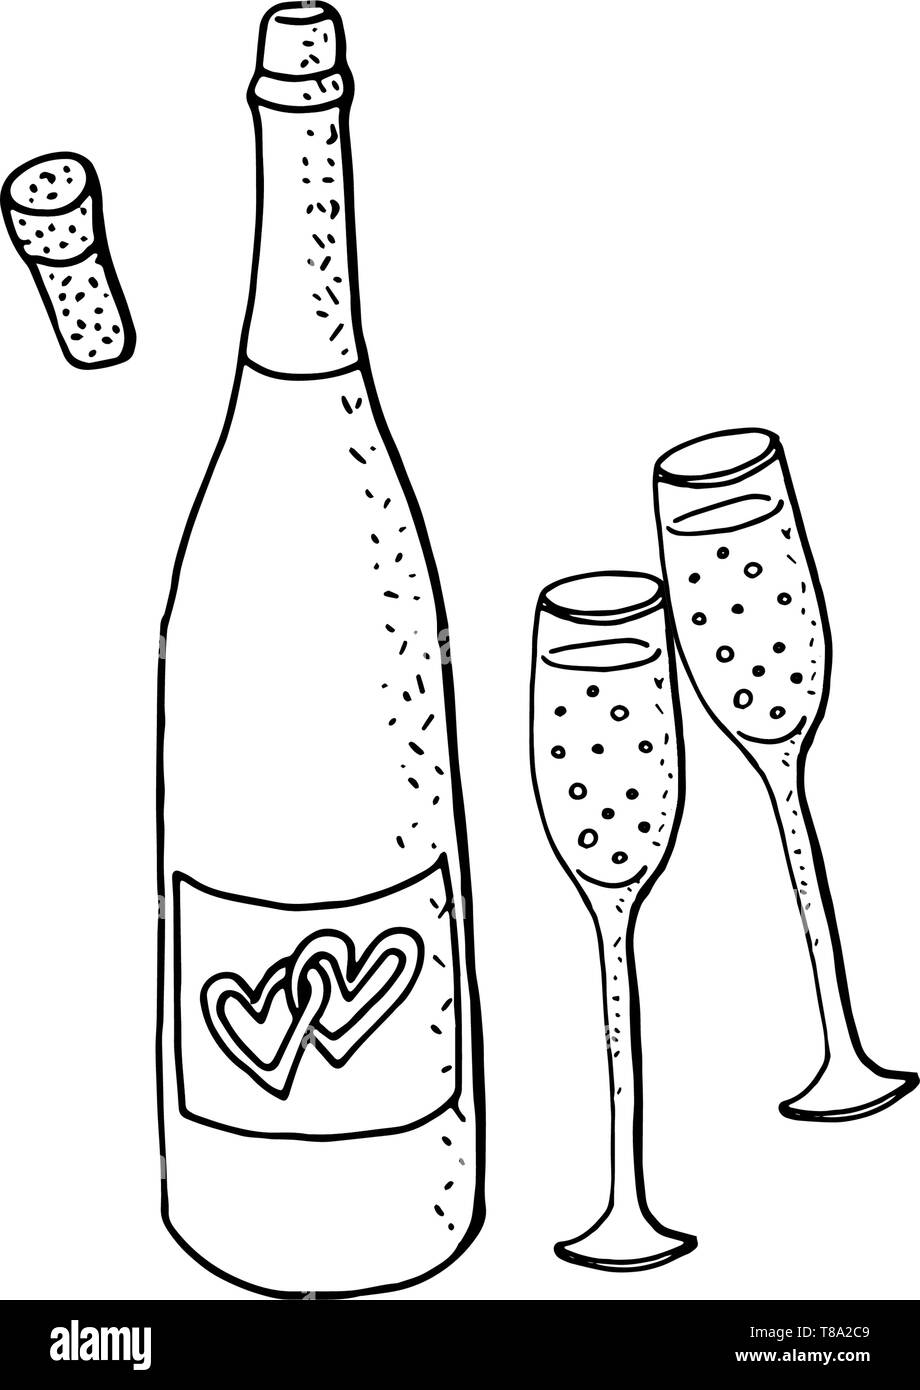 hight resolution of wedding clipart with green wine bottle and two glasses of sparkling wine